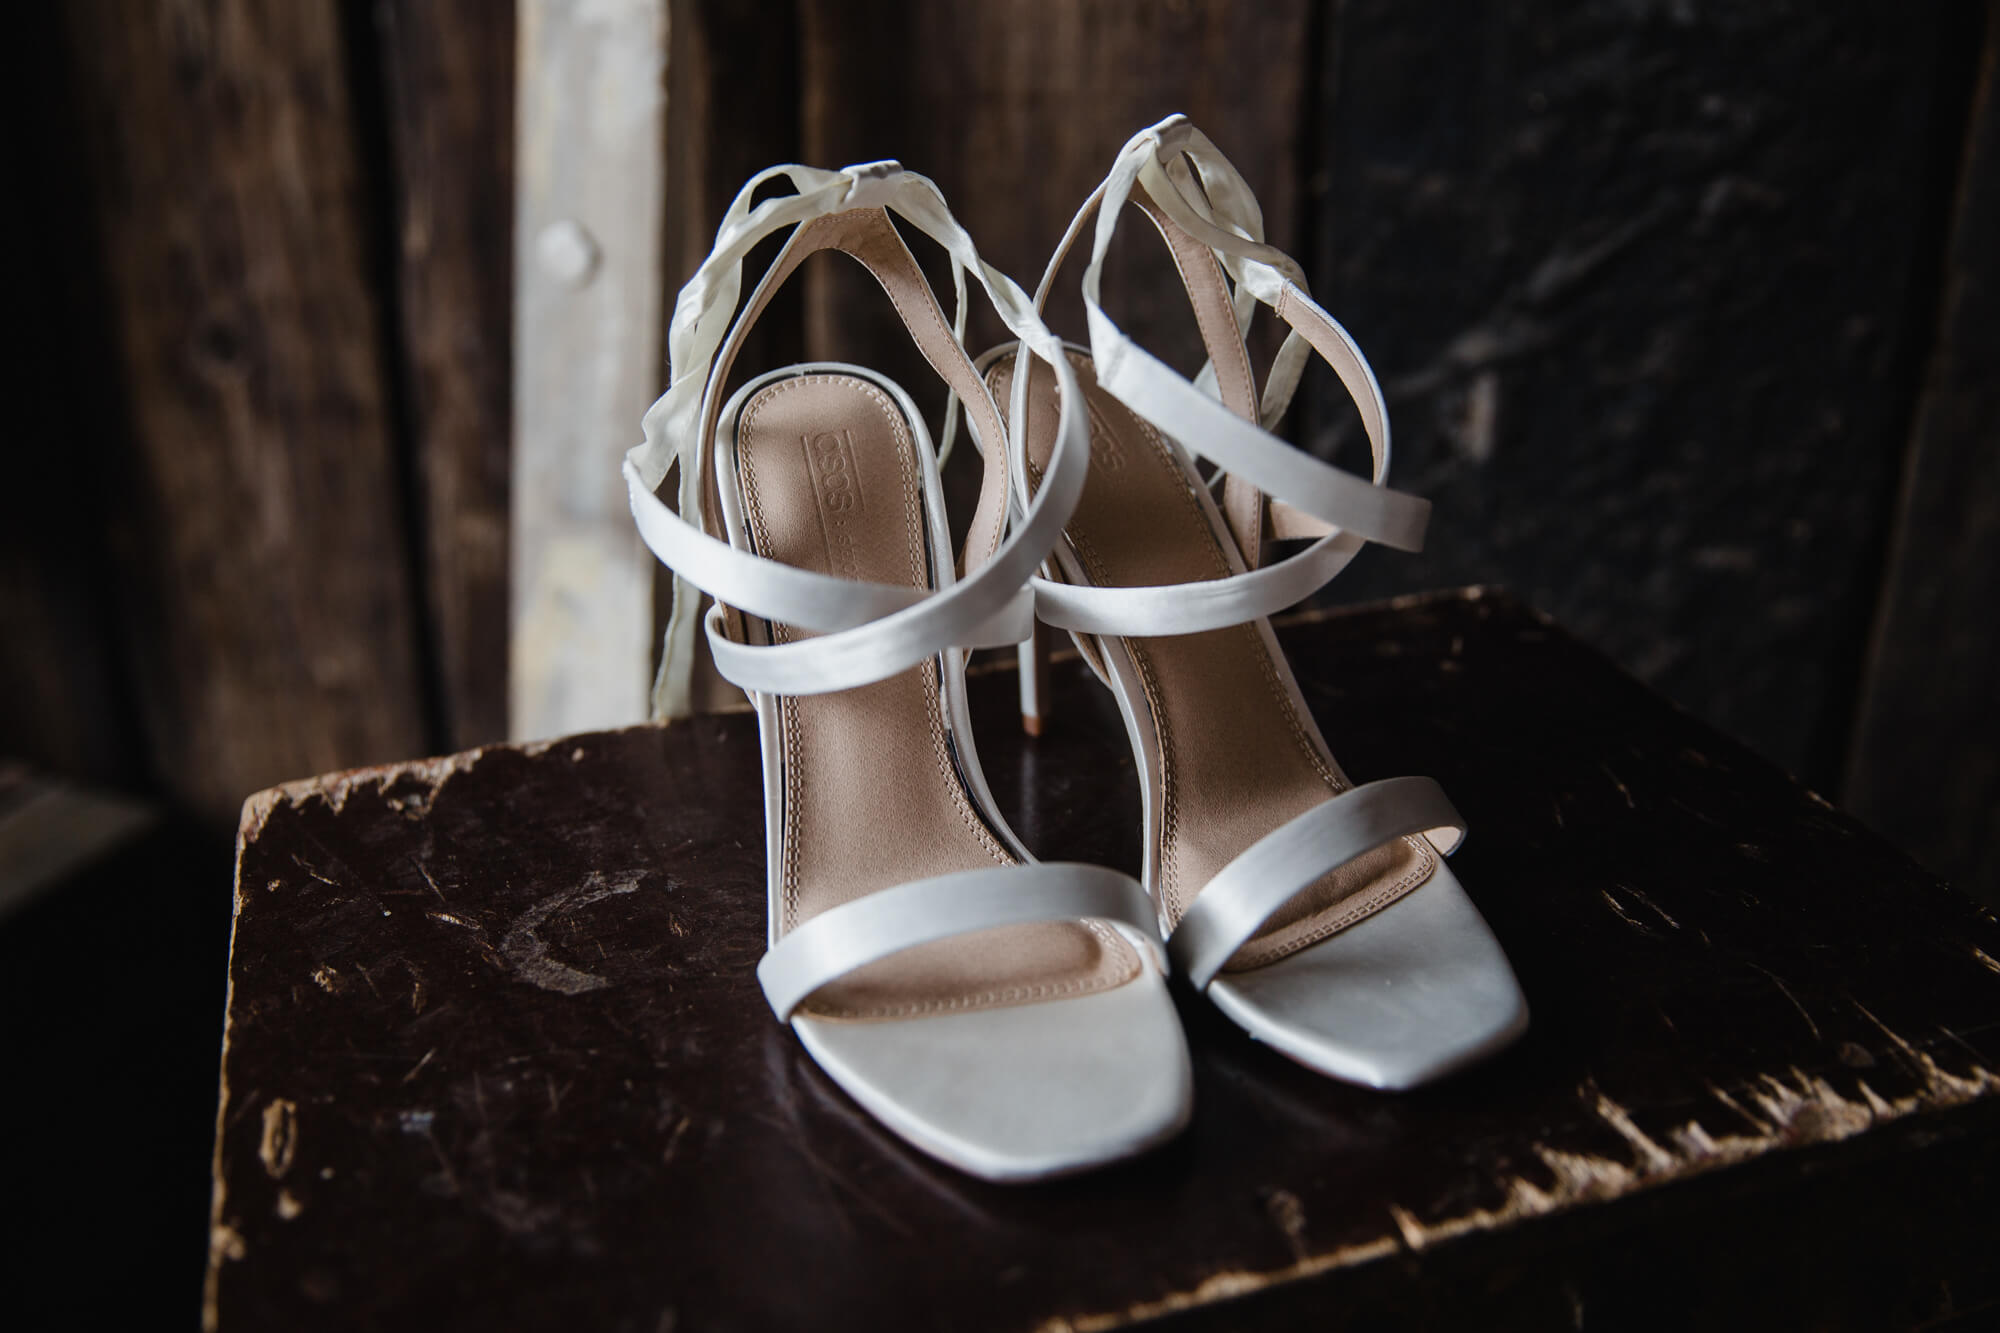 bridal shoes in wedding barn to contrast against brown backdrop